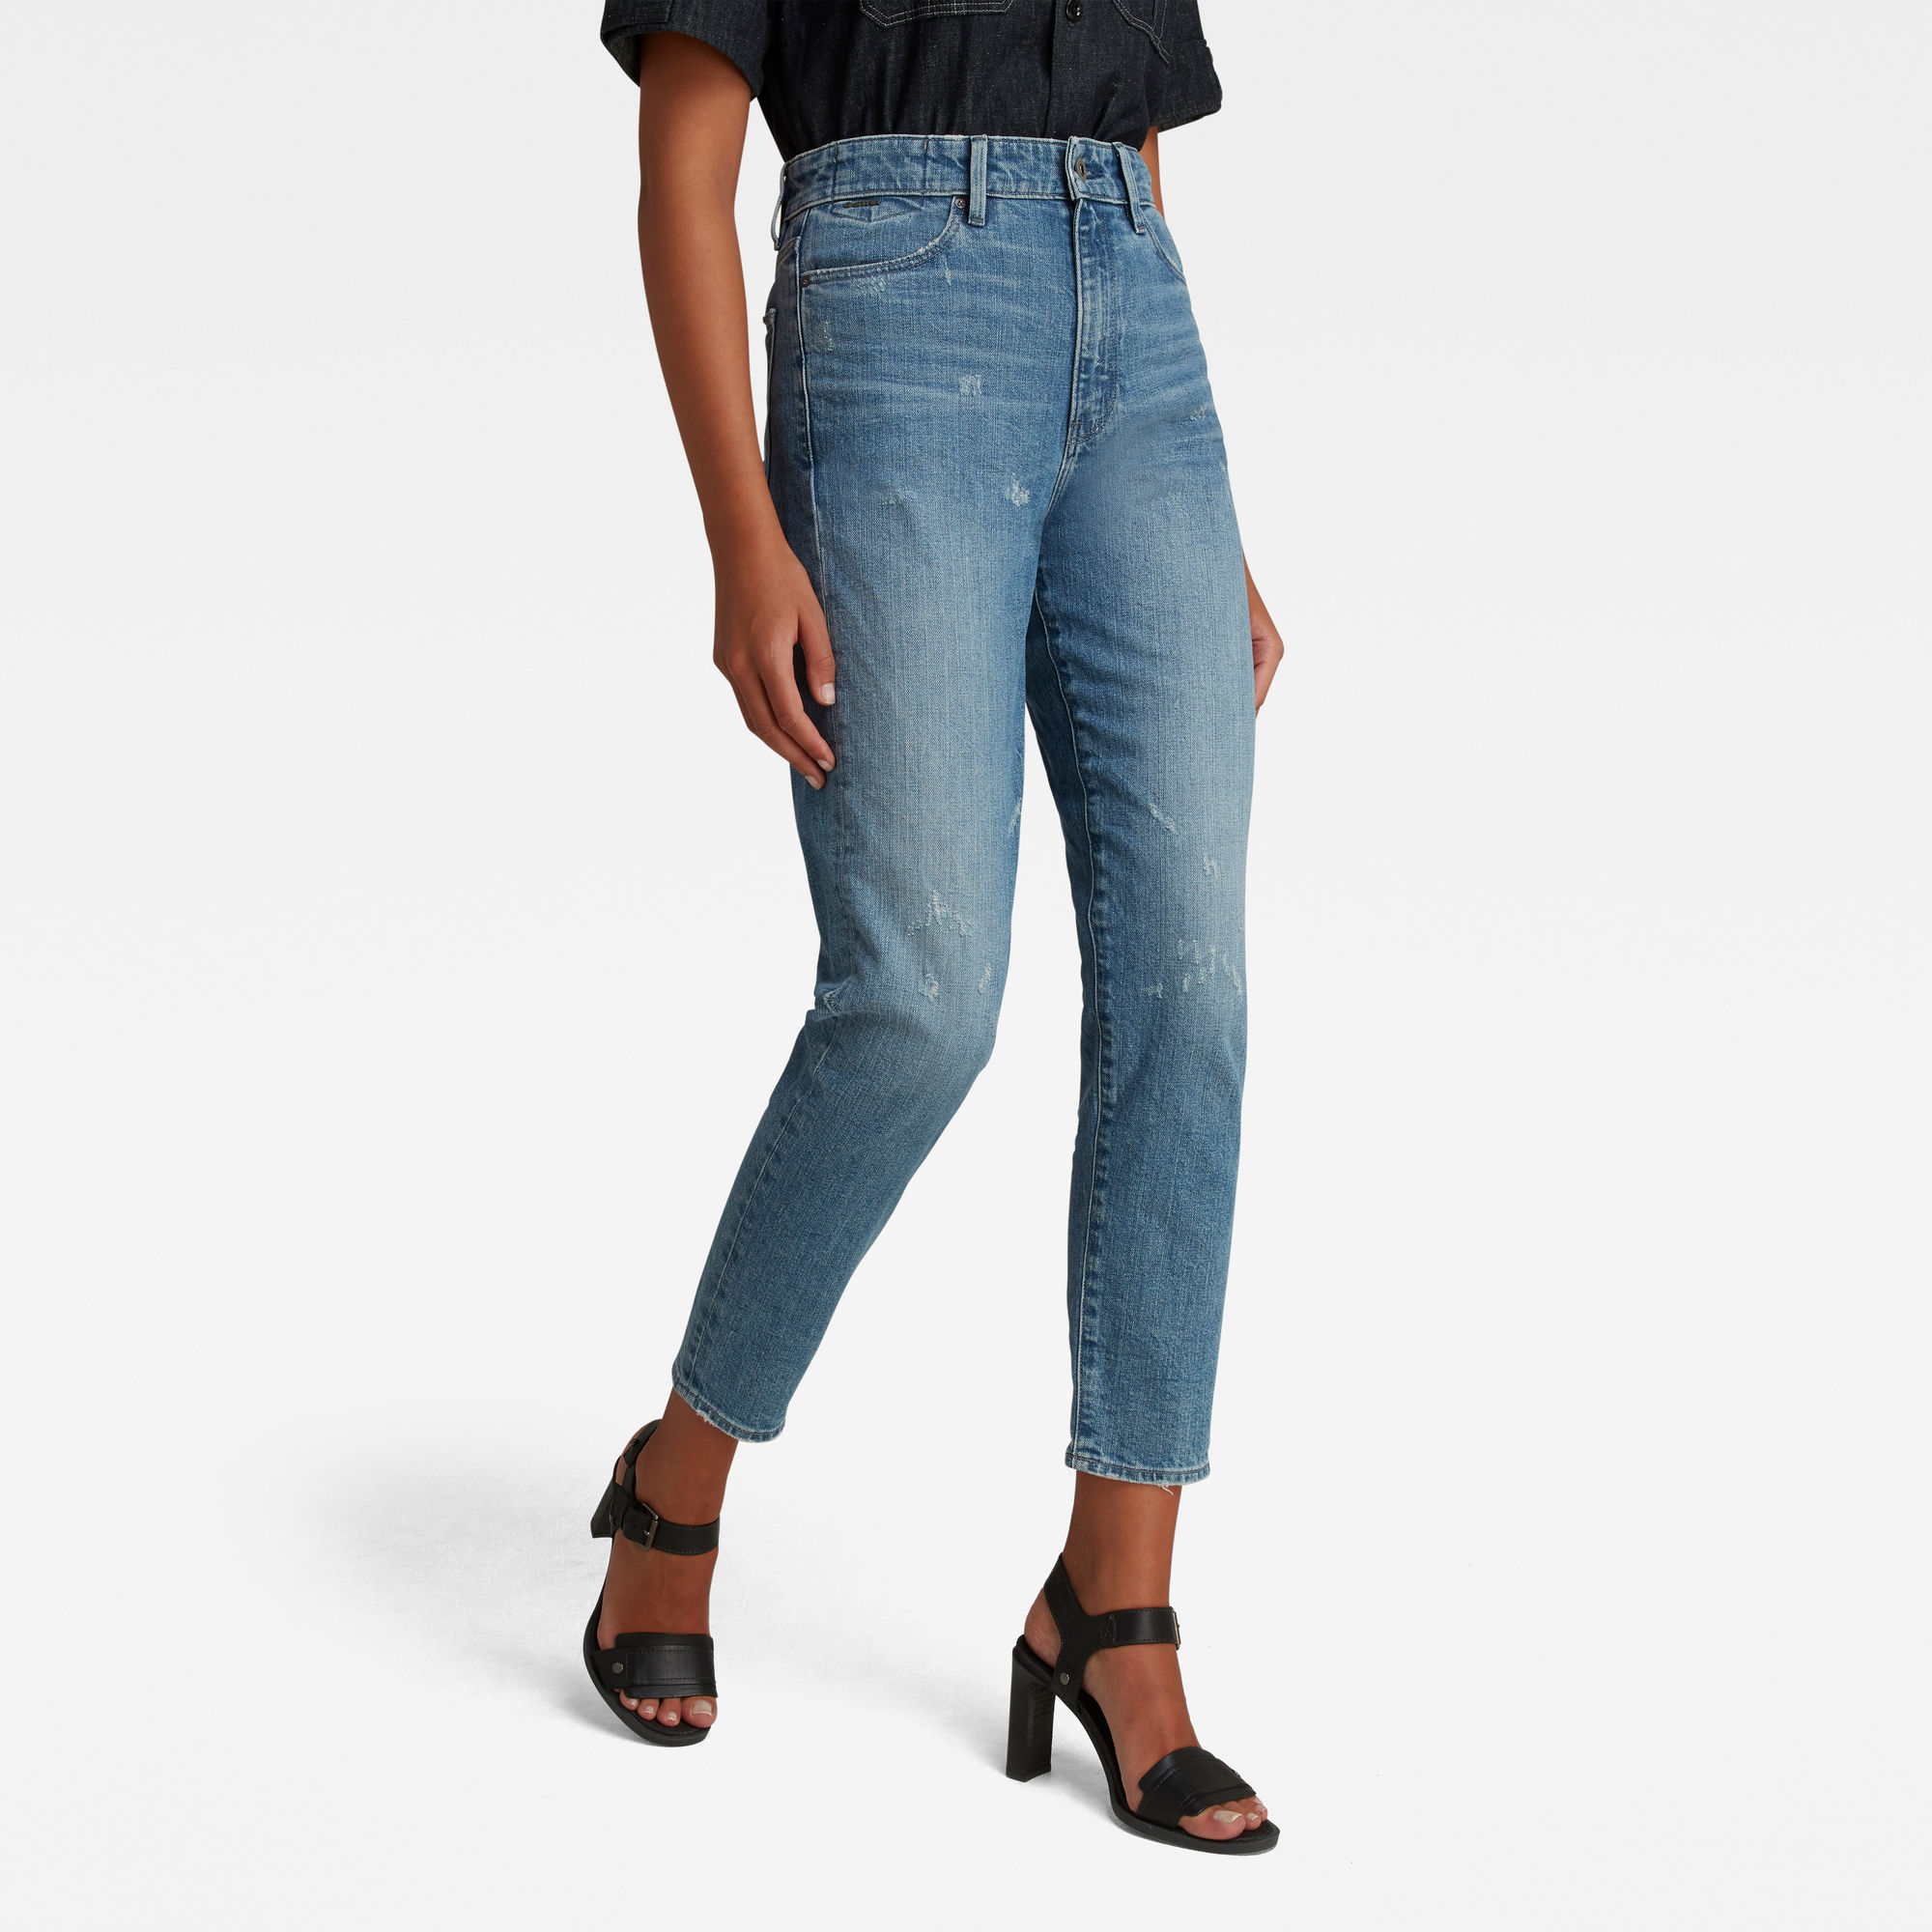 G-Star RAW Dames Janeh Ultra High Mom Ankle Jeans Lichtblauw